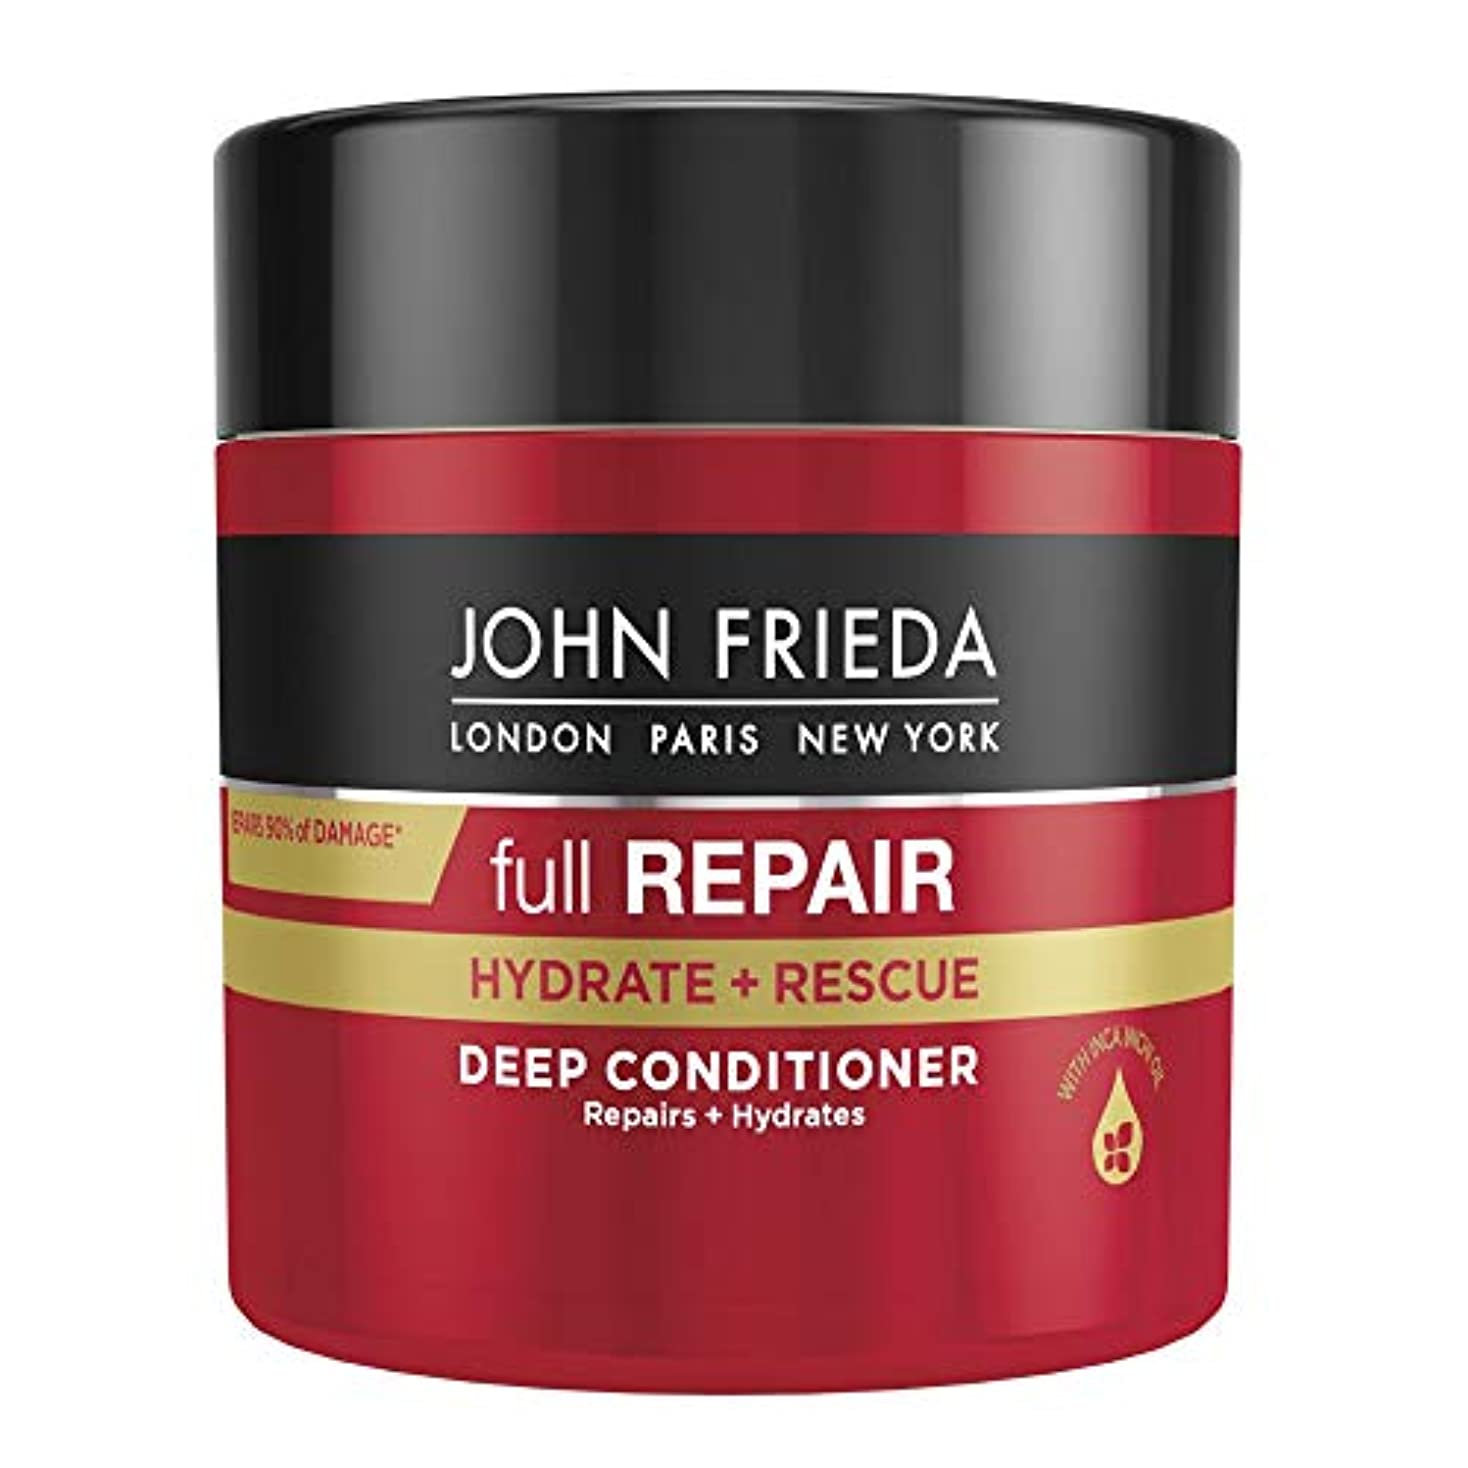 省床を掃除する破壊的なJohn Frieda? Full Repair(TM) Deep Conditioner 150ml